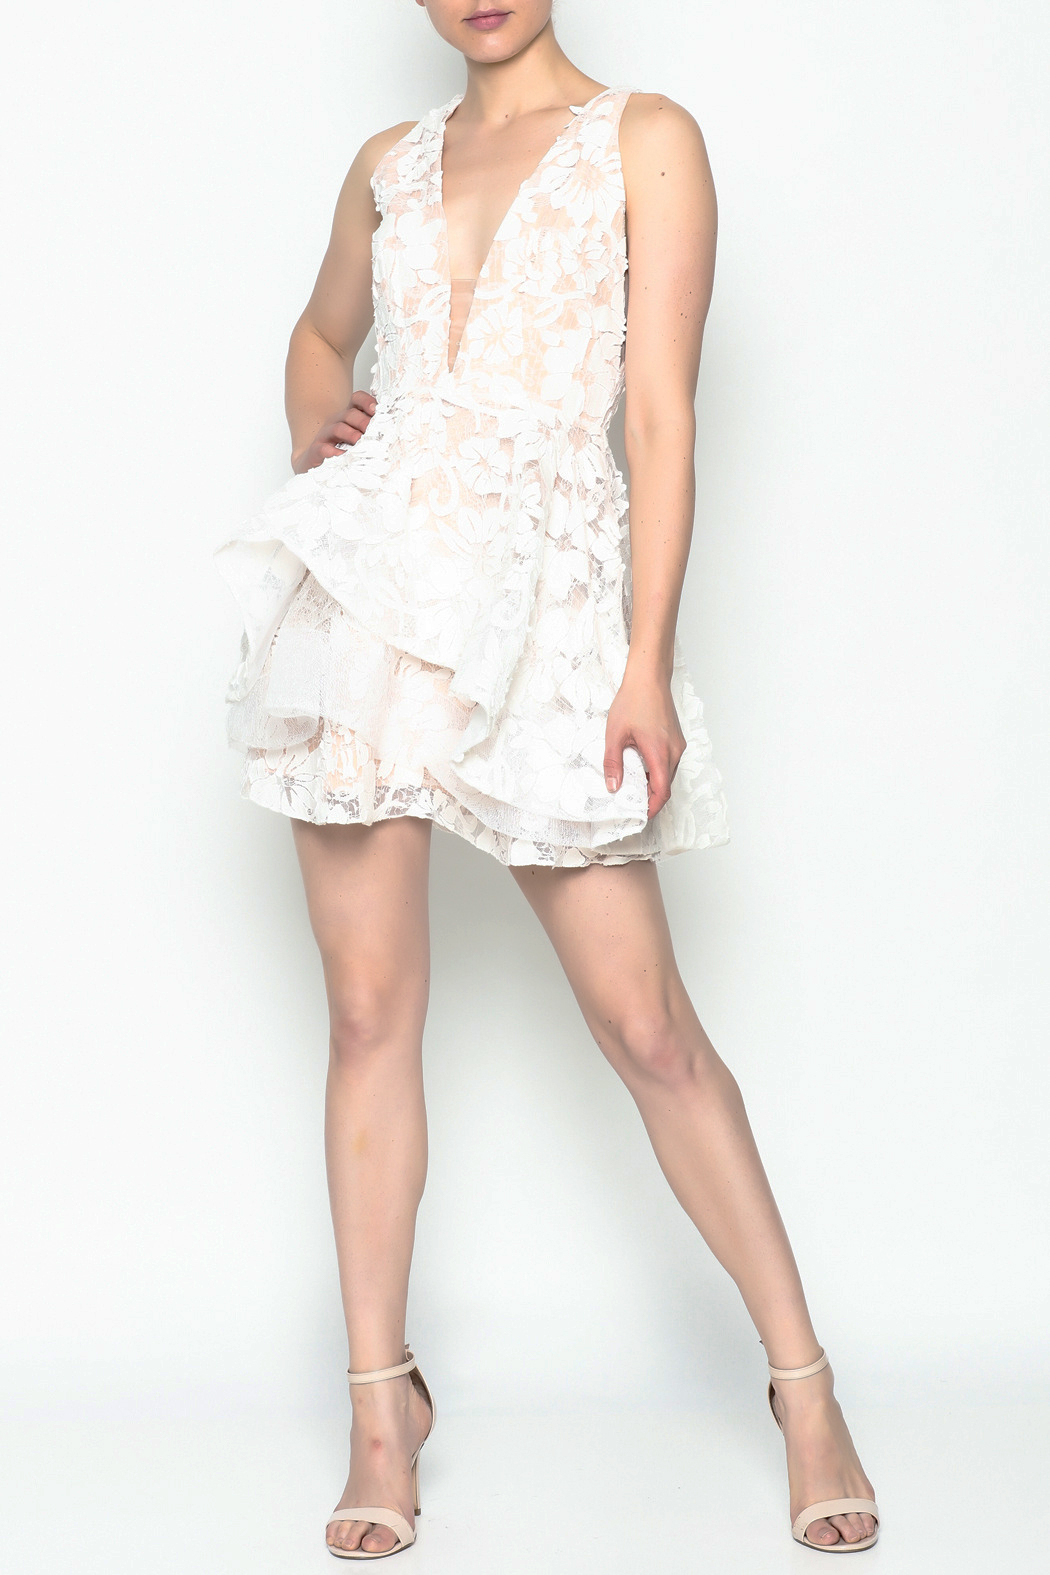 luxxel White Layered Dress - Side Cropped Image